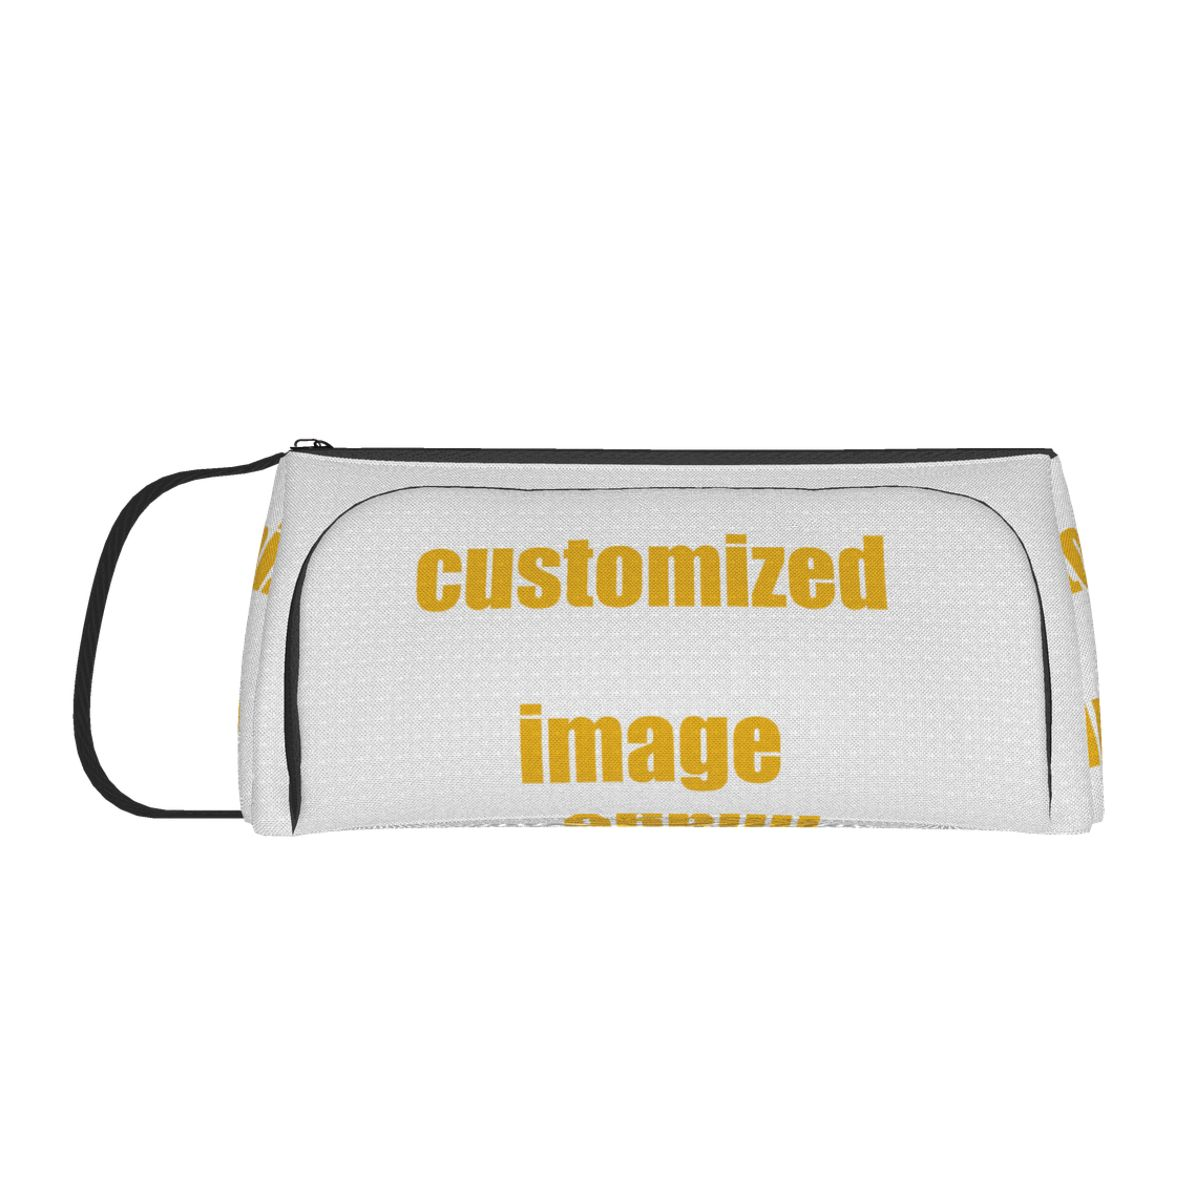 NOISYDESIGNS Customized Printed Pencil Case School Pencil Box Pencilcase Pencil Bag School Supplies Stationery Multifunctional new 1 pc pencil case avocado school pencil box pencilcase transparent pencil bag school supplies stationery